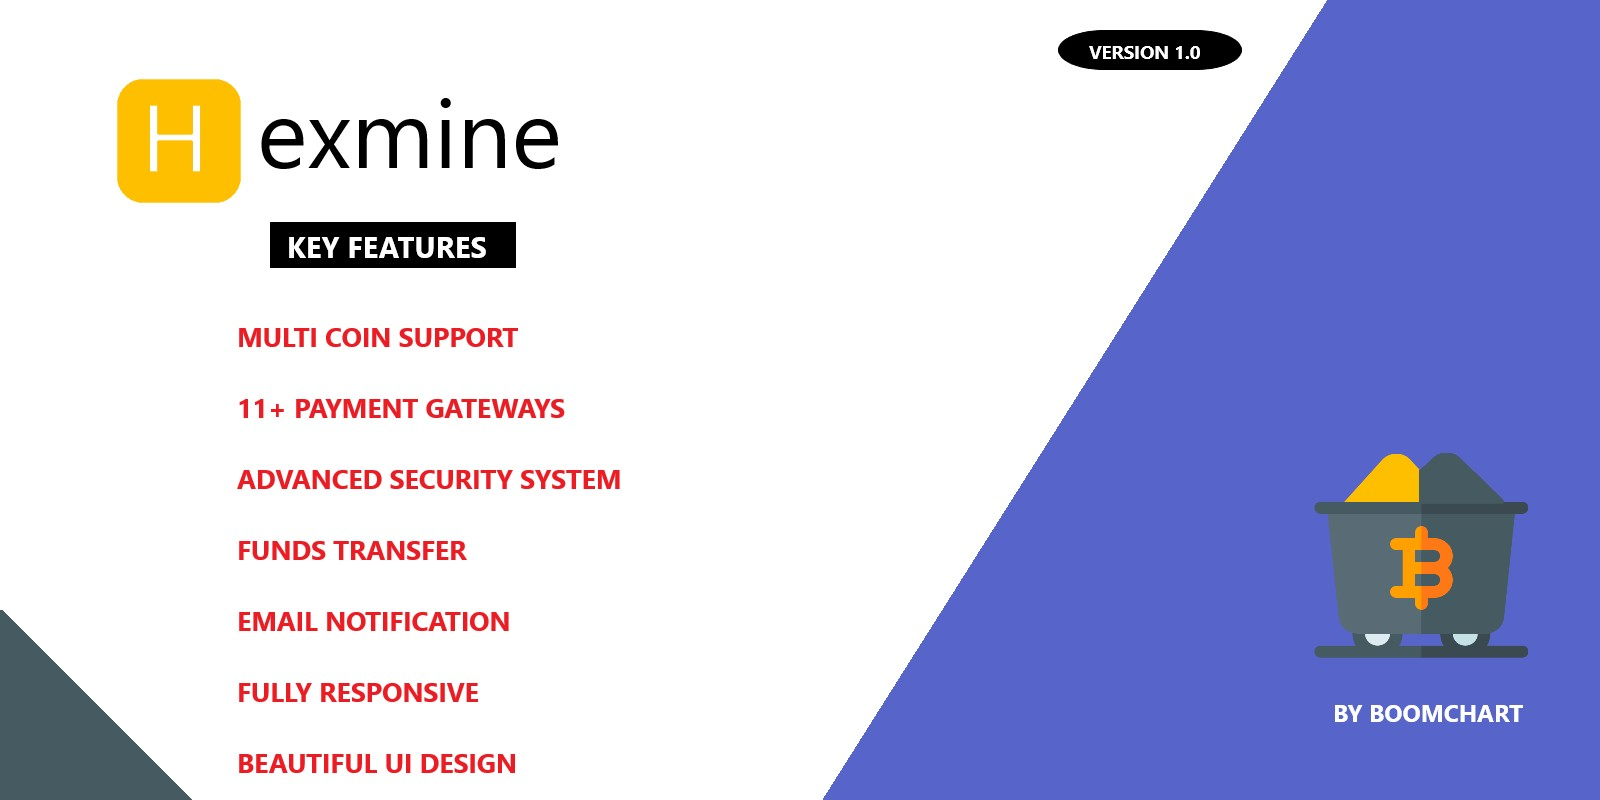 Hexmine Cloudmining PHP Script